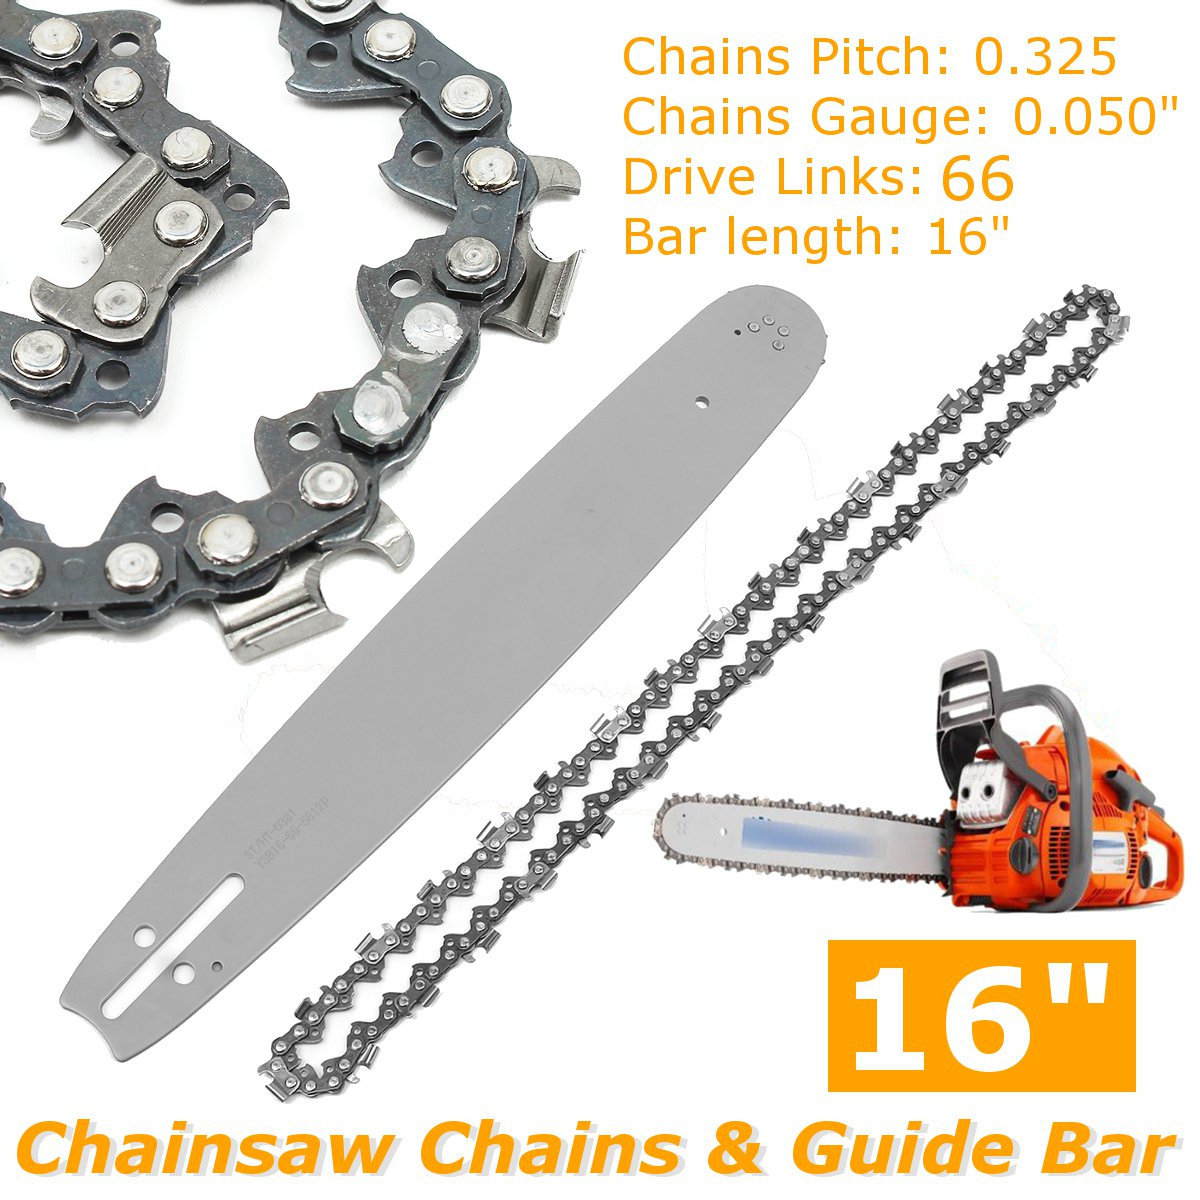 16 Inch Chainsaw Chains +Guide Bar Semi Chisel Chain For Husqvarna 36 41 50 51 55  346XP 450 455 460 POULAN 66DL